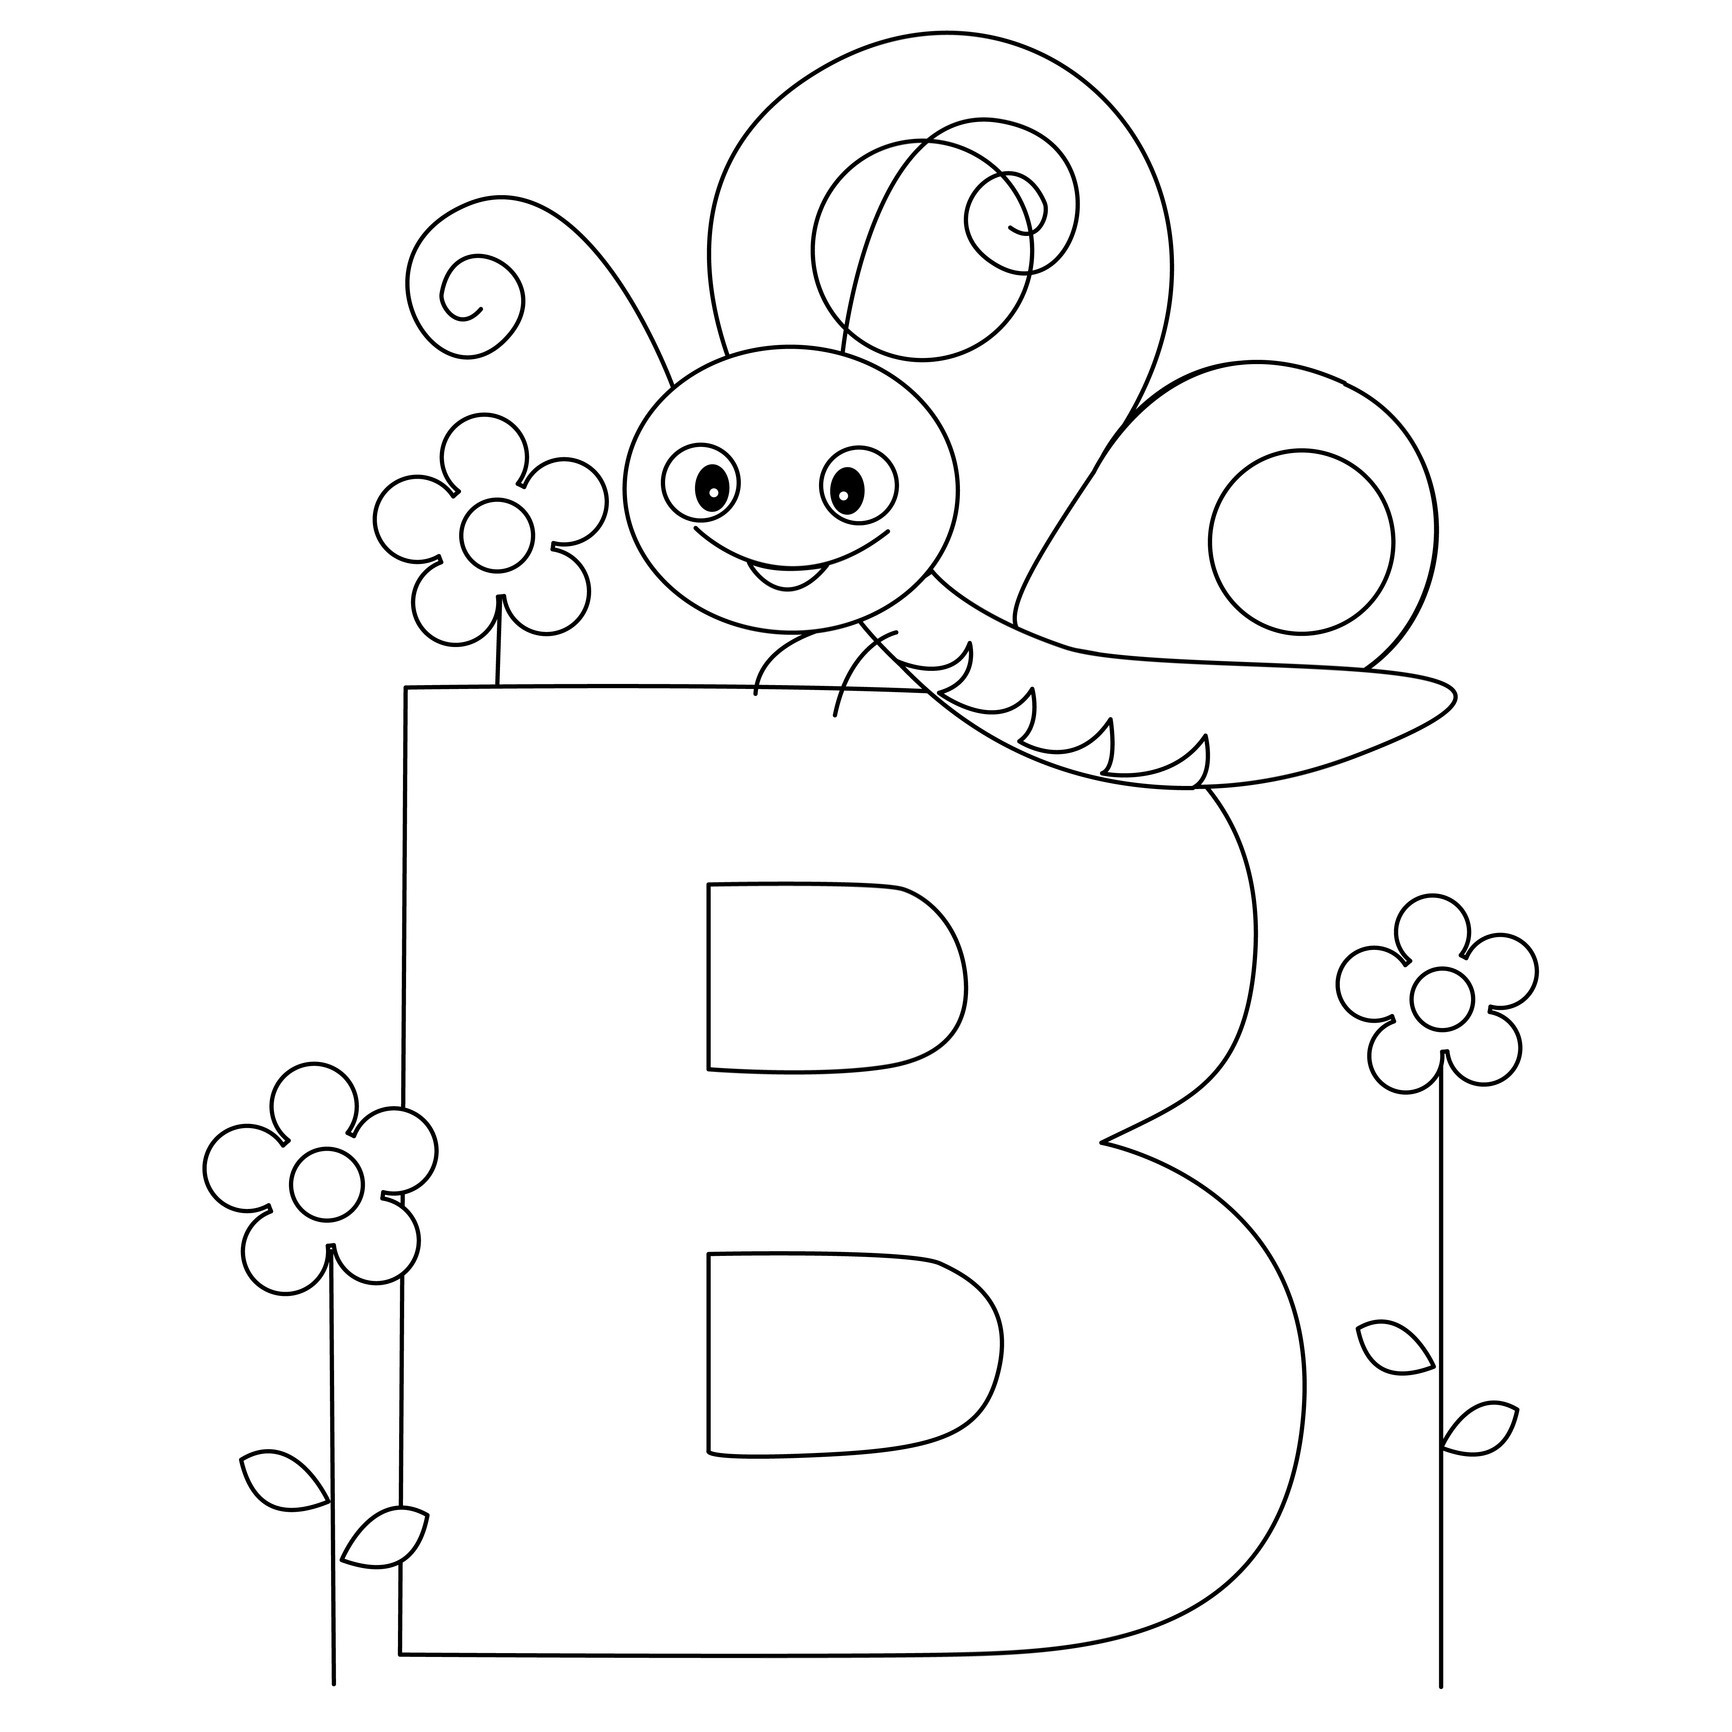 alphabet b coloring pages letter b coloring pages preschool and kindergarten b alphabet pages coloring